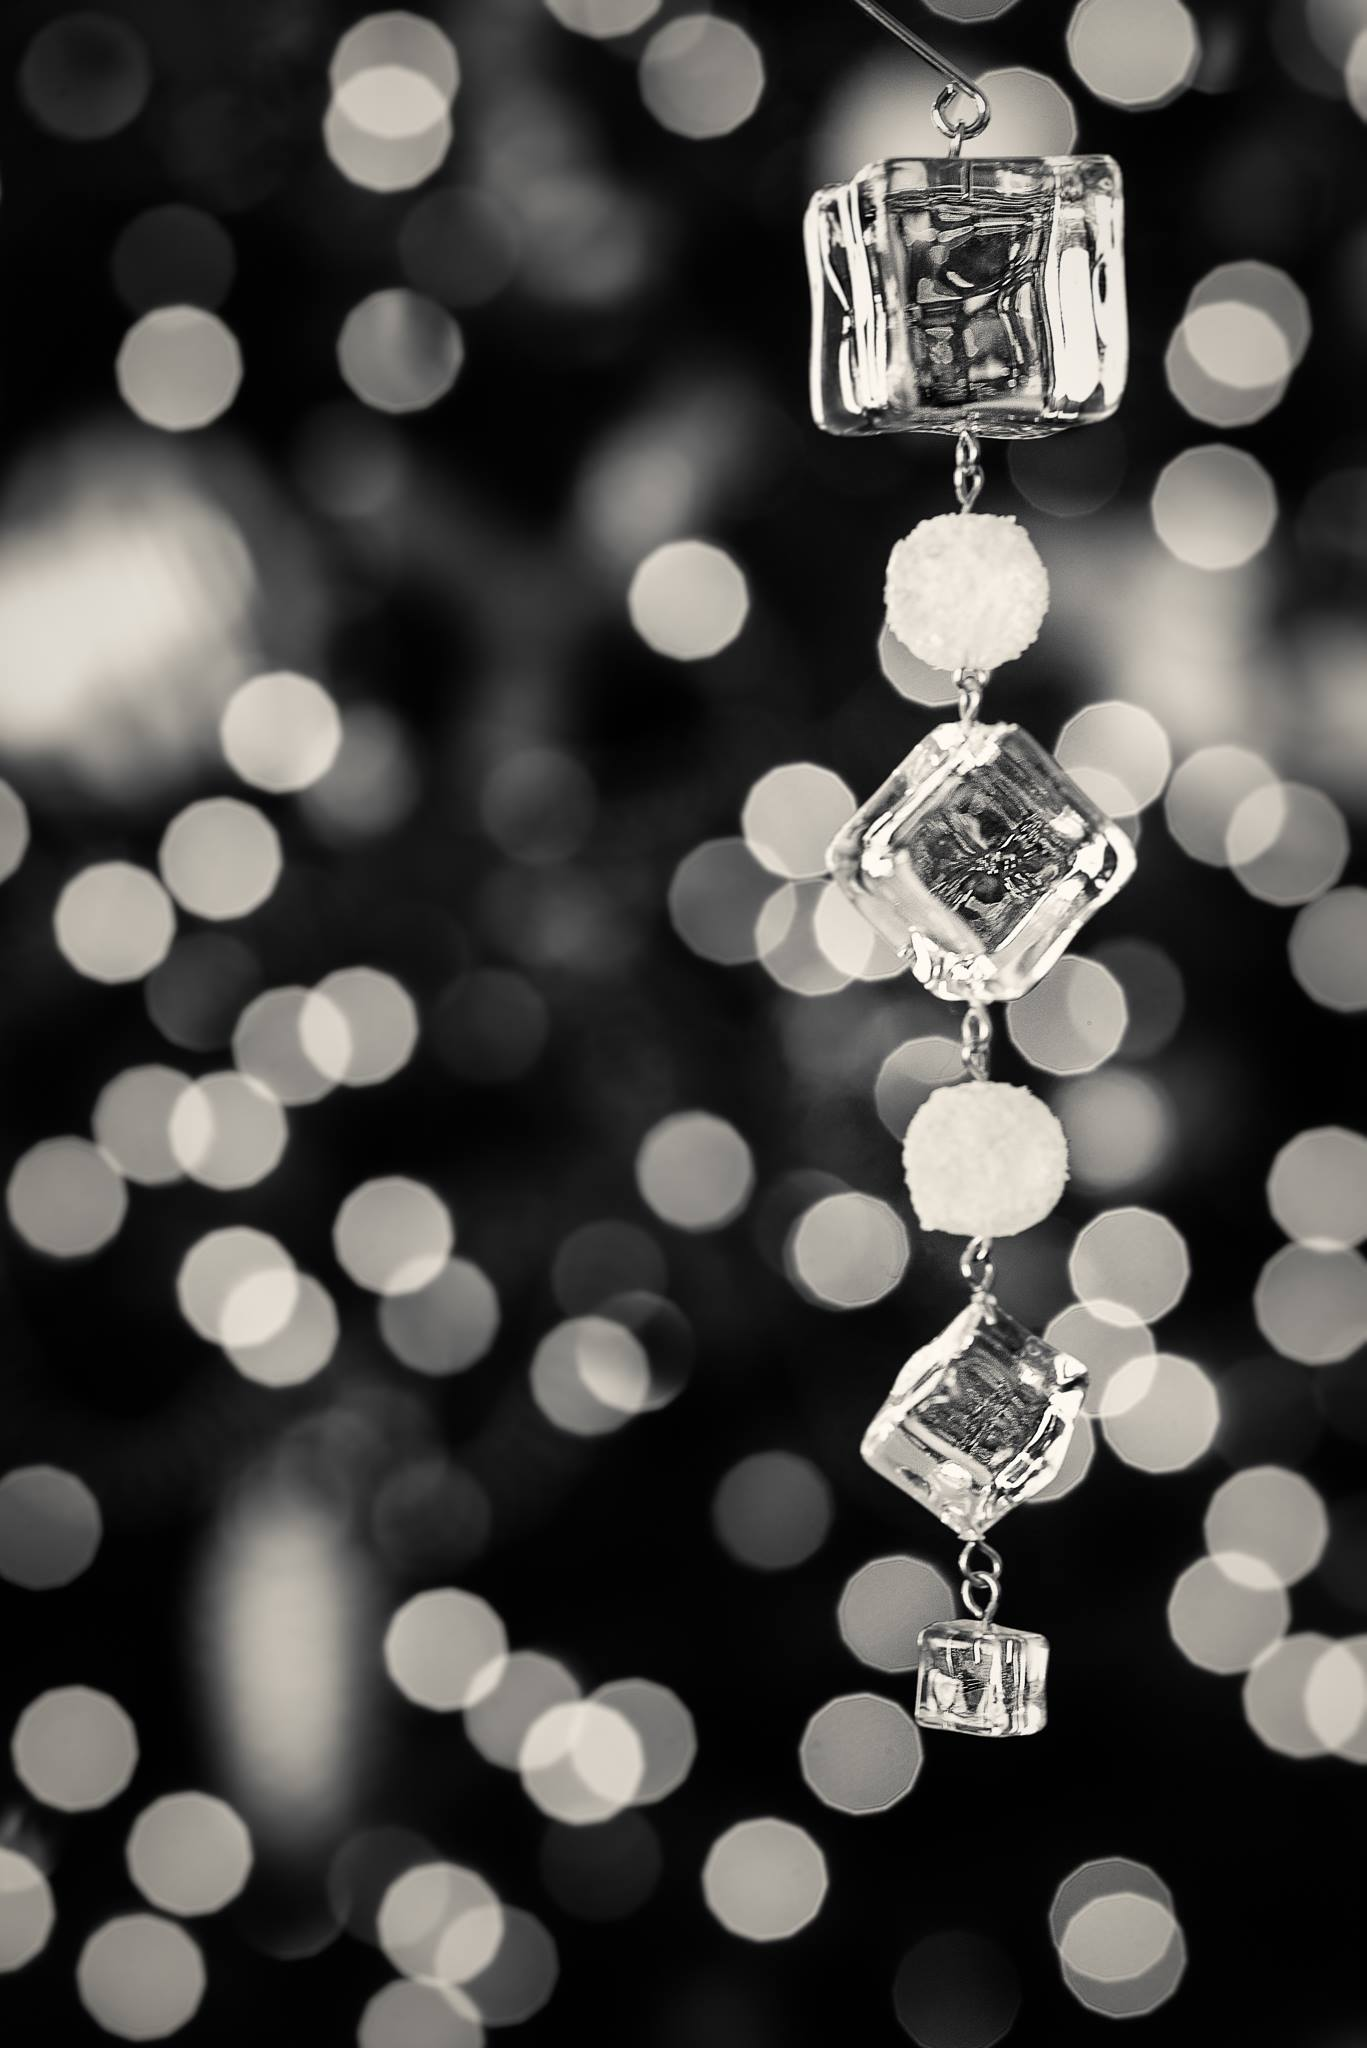 christmas decorations bokeh lights ice cubes black and white lensbaby featured photo of the week